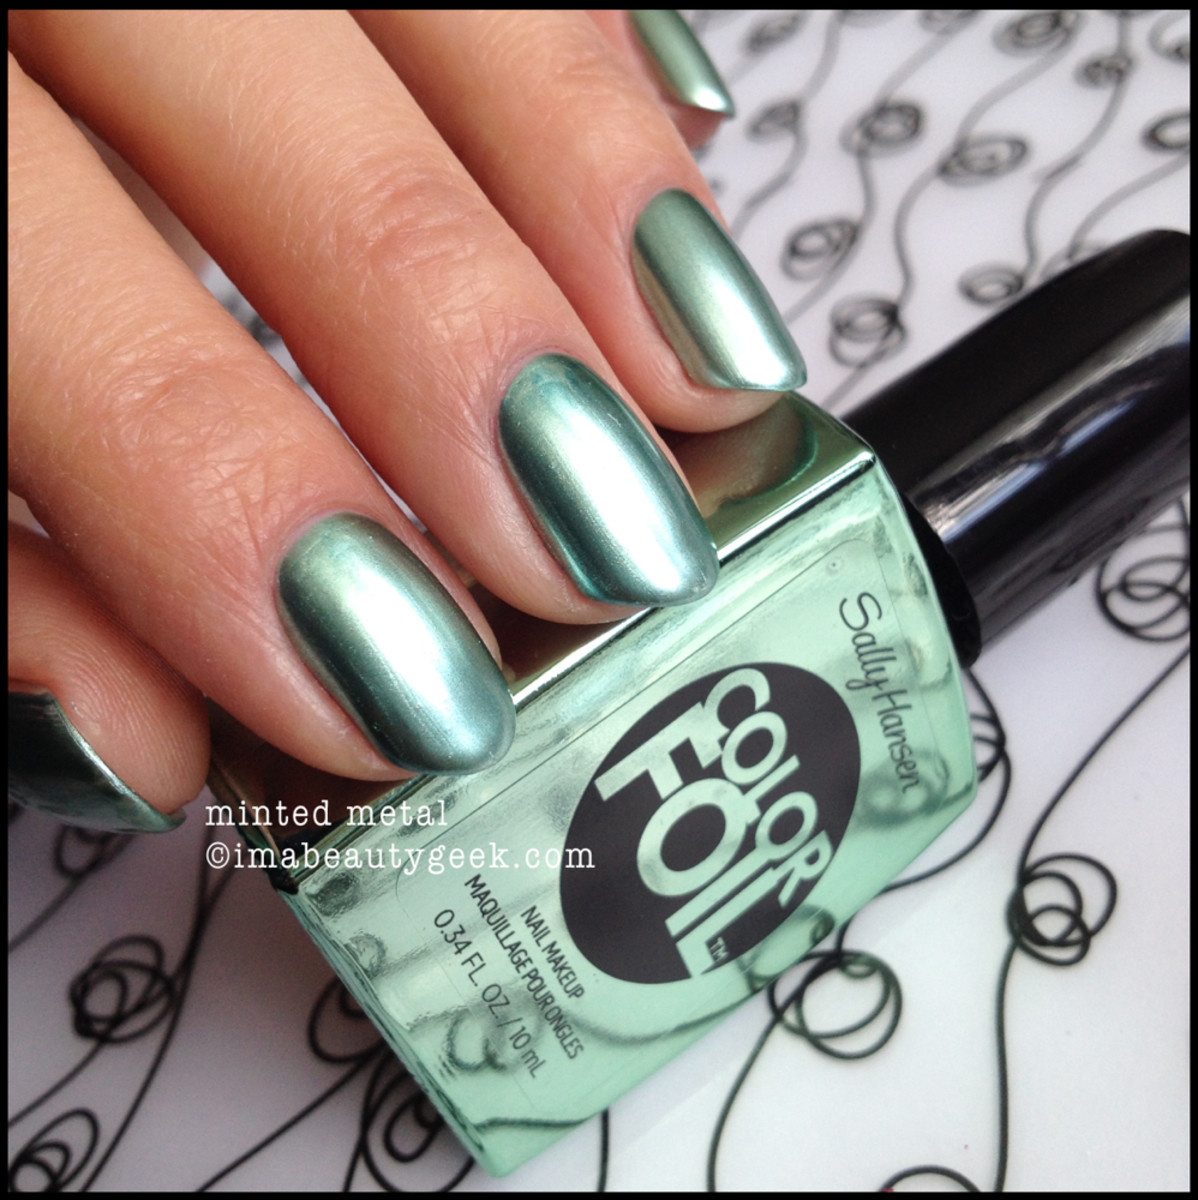 Sally Hansen Color Foil Minted Metal